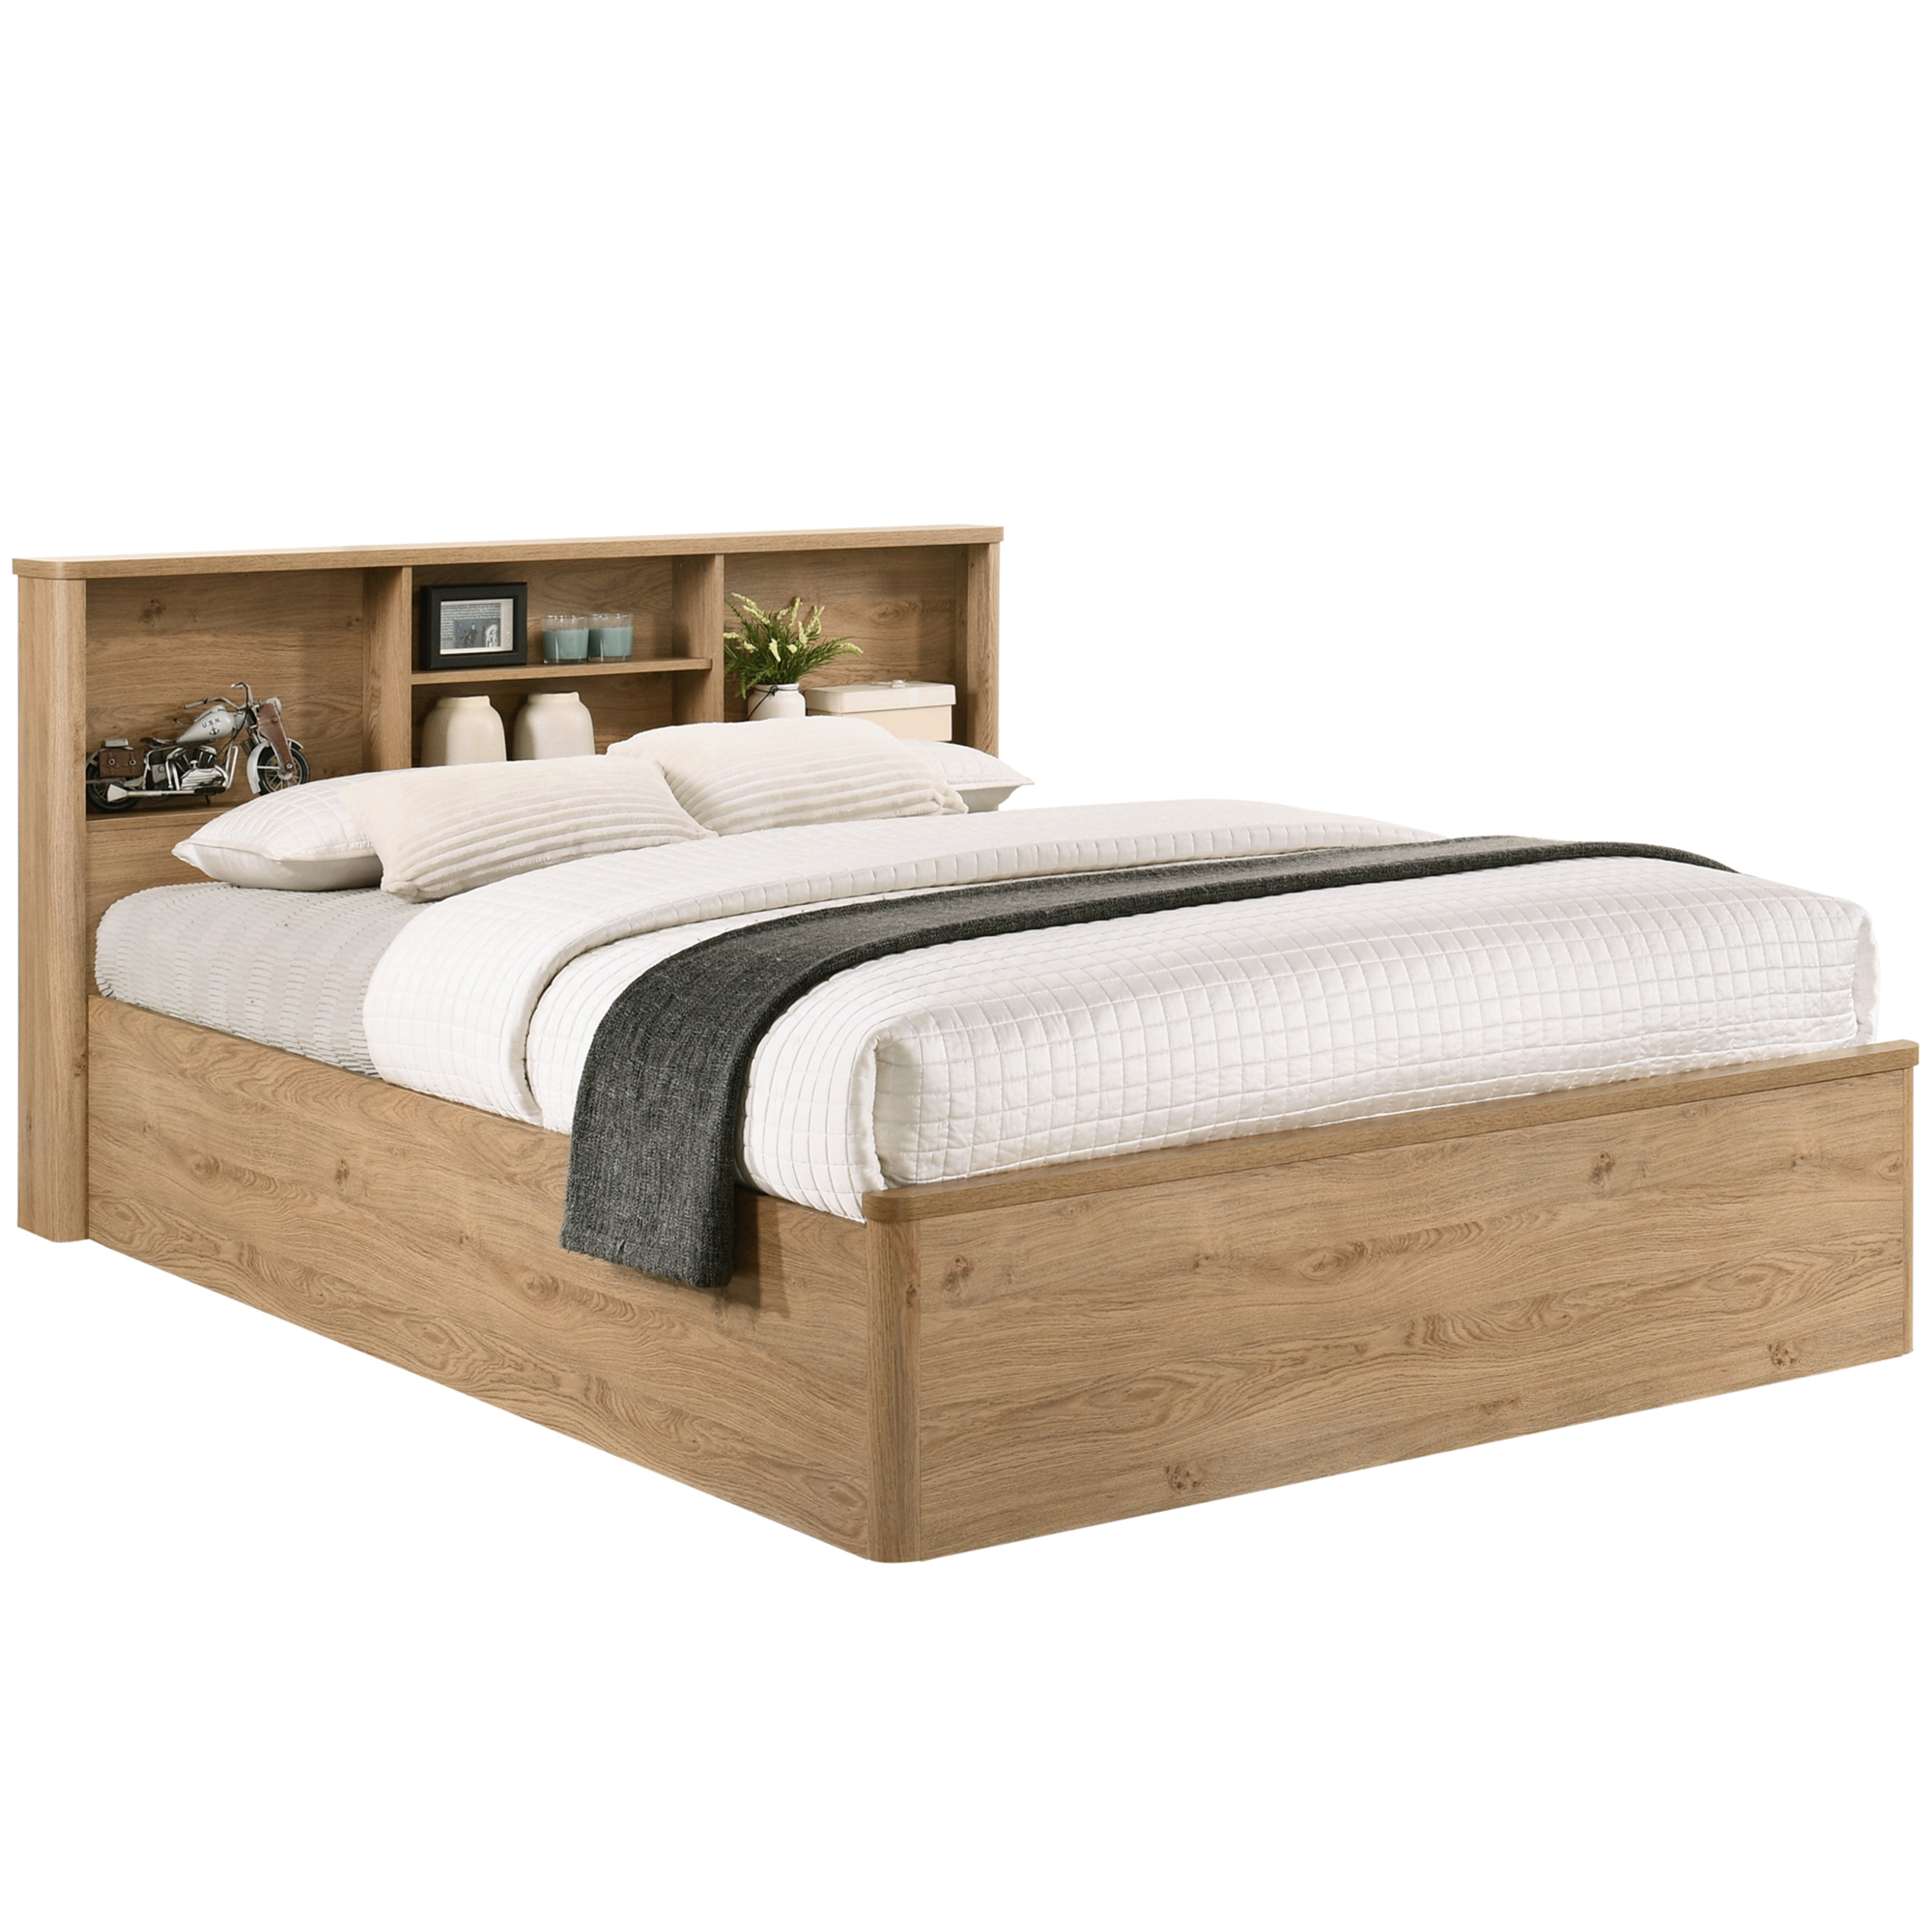 Natural Anderson Queen Bed With Bookcase Headboard